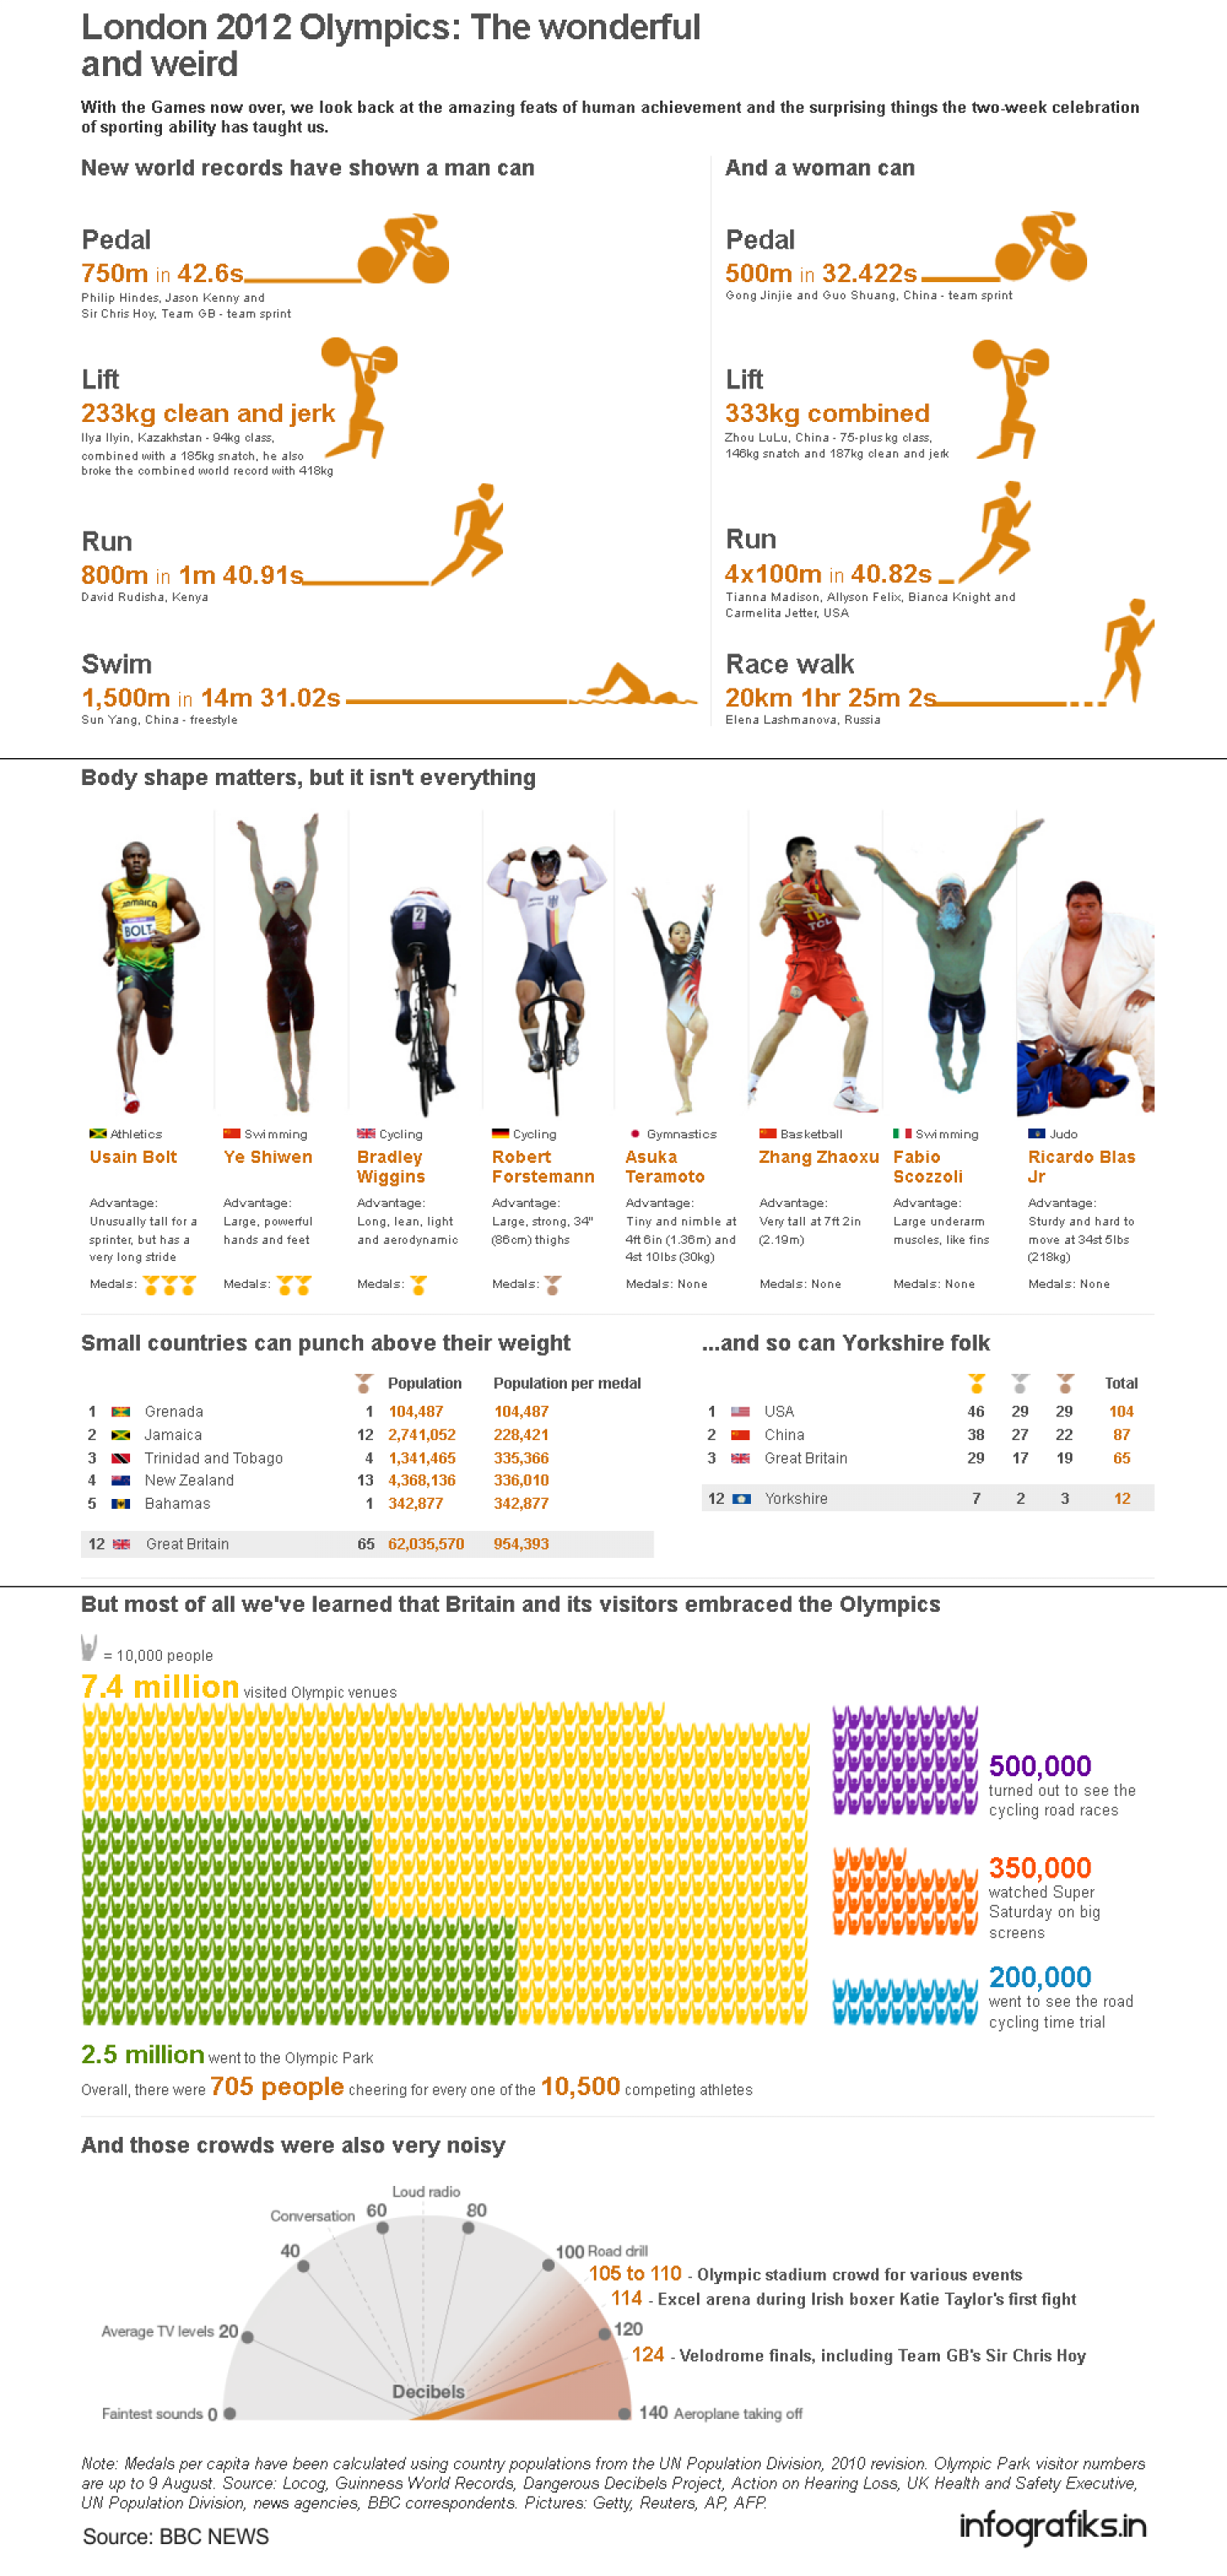 London 2012 Olympics: The Wonderful and Weird Infographic